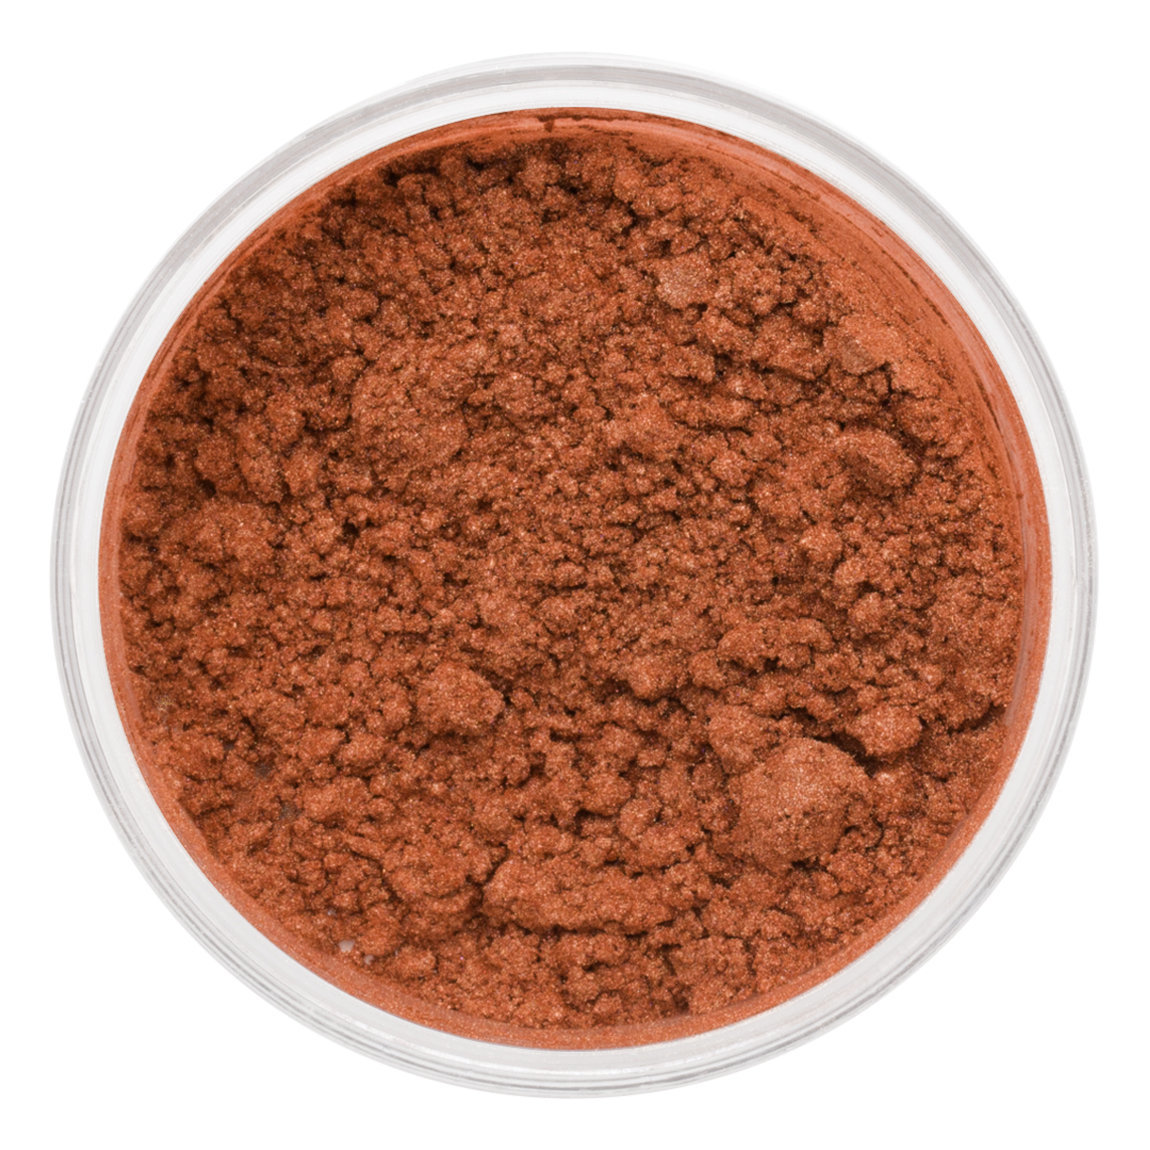 Danessa Myricks Beauty Enlight Illuminator Attraction product swatch.